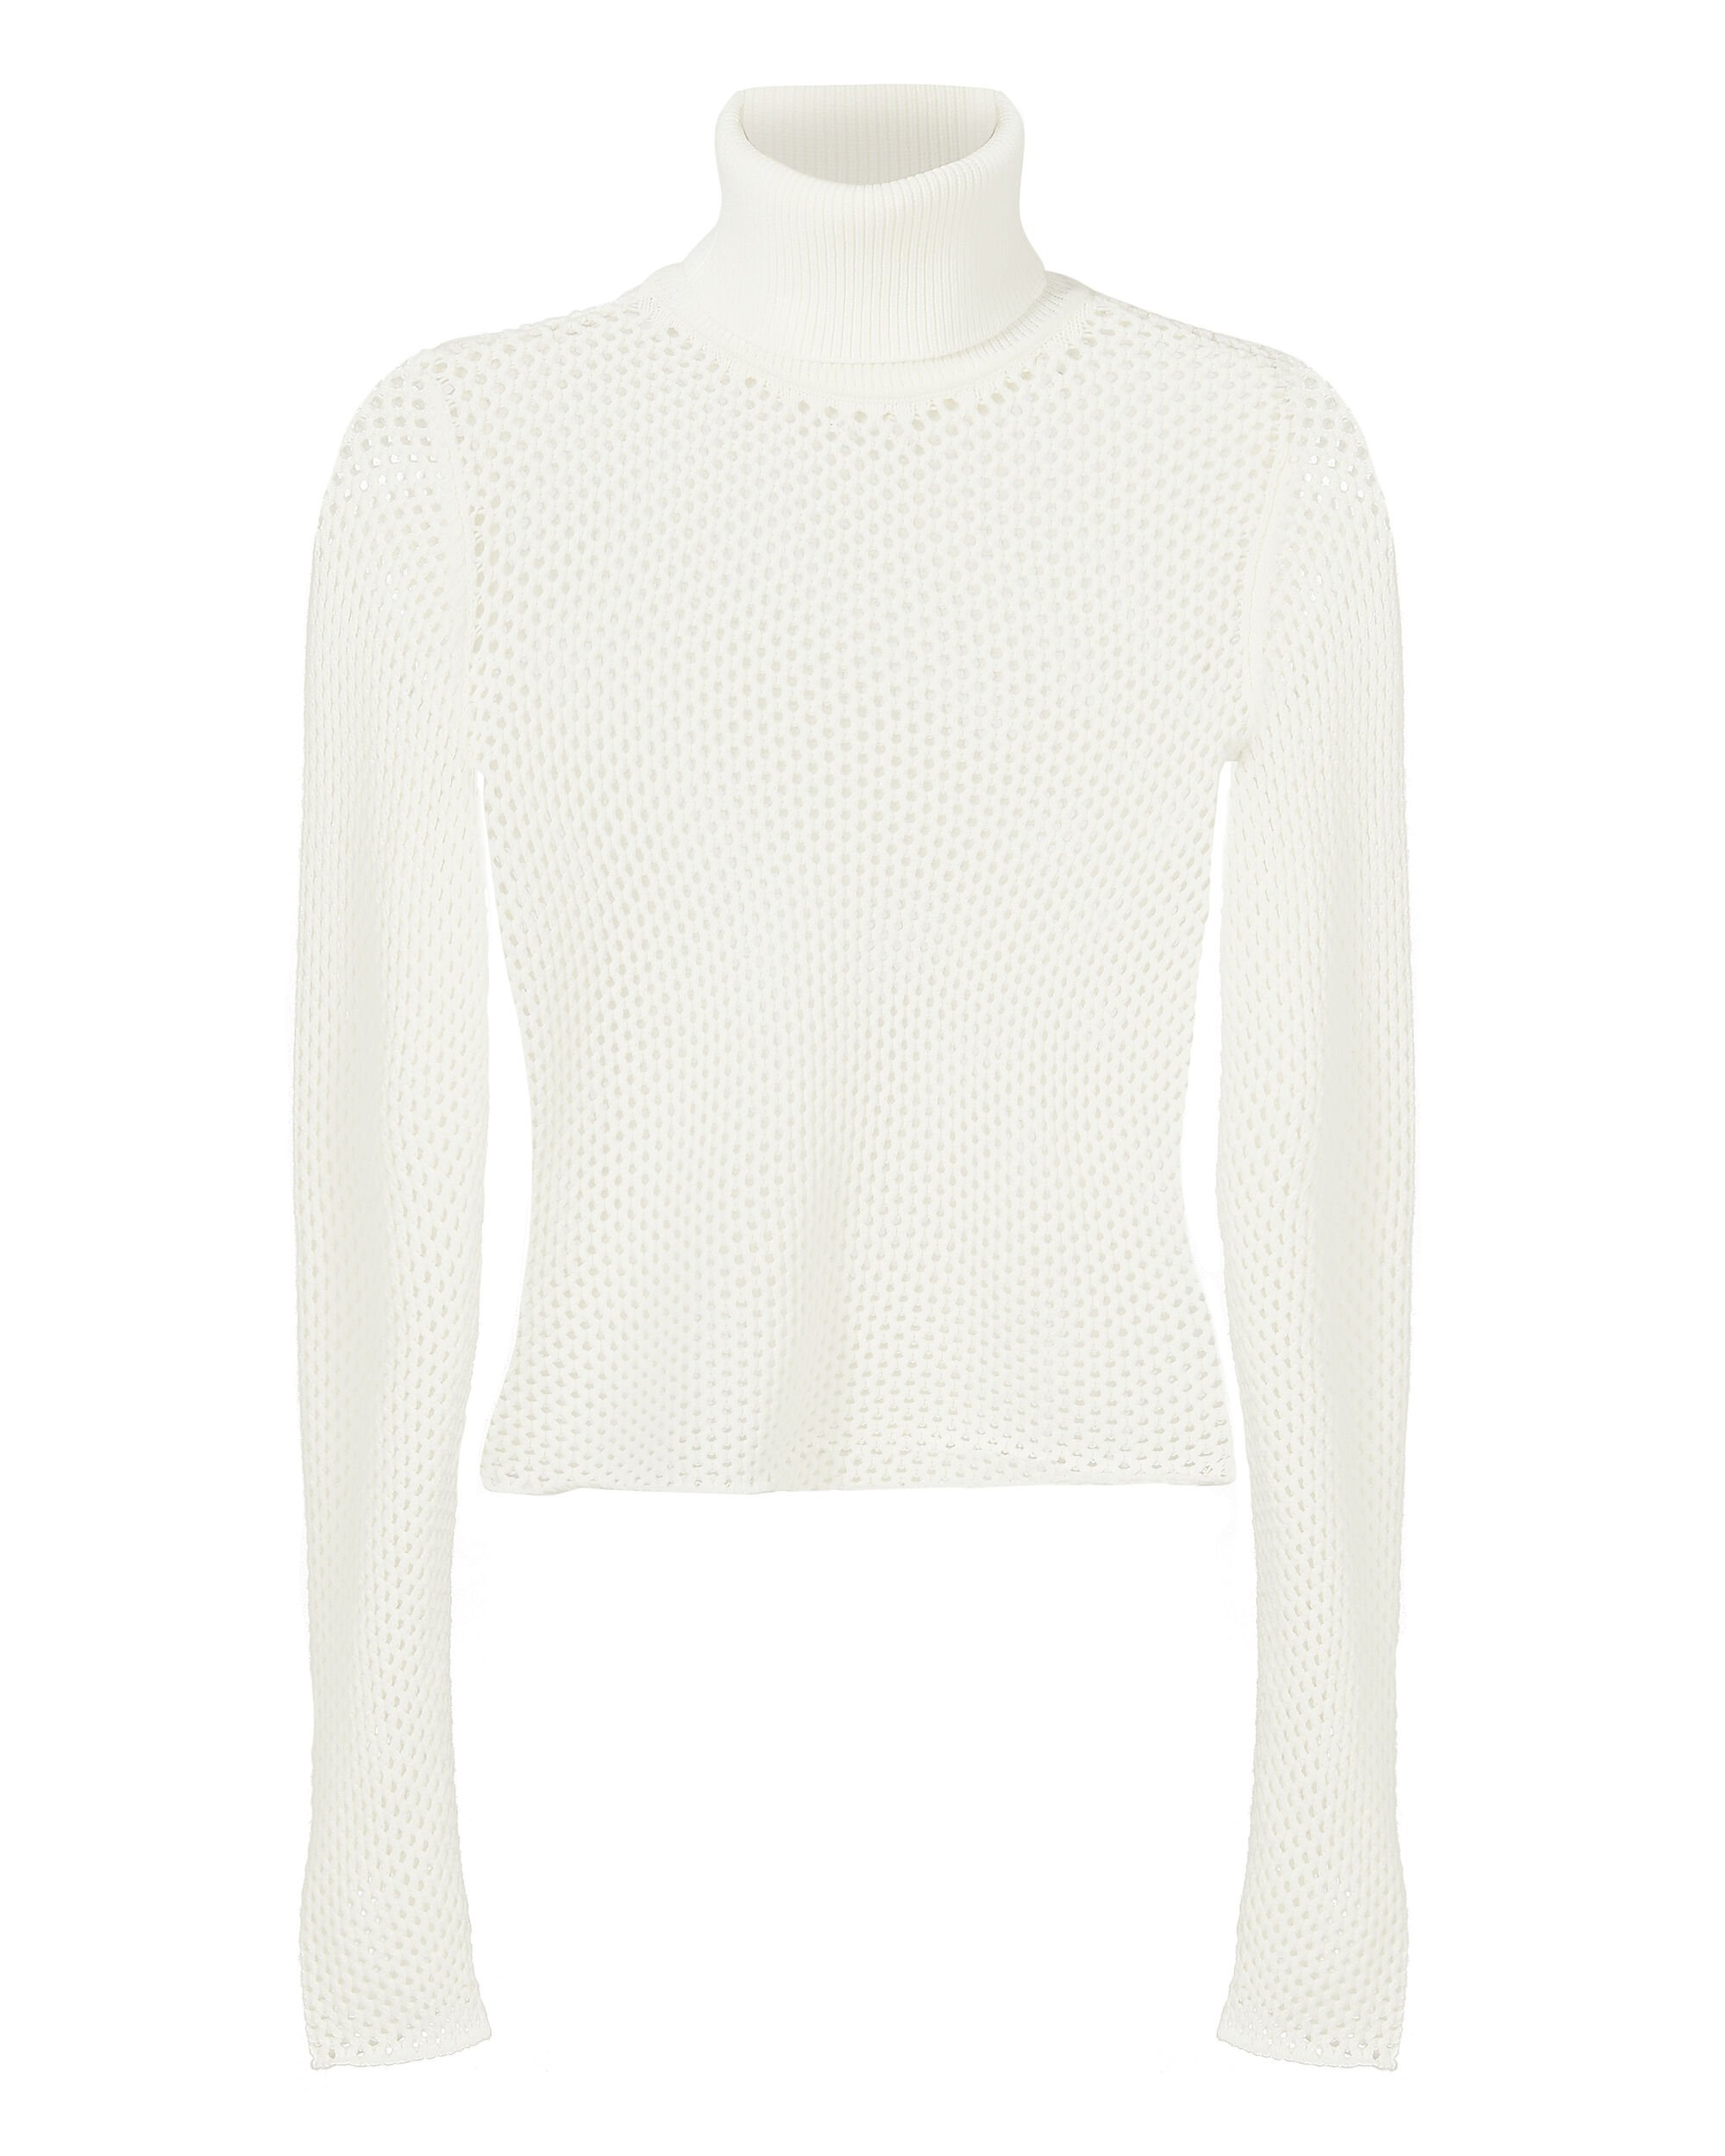 Jones Open Knit Cropped Sweater, WHITE, hi-res